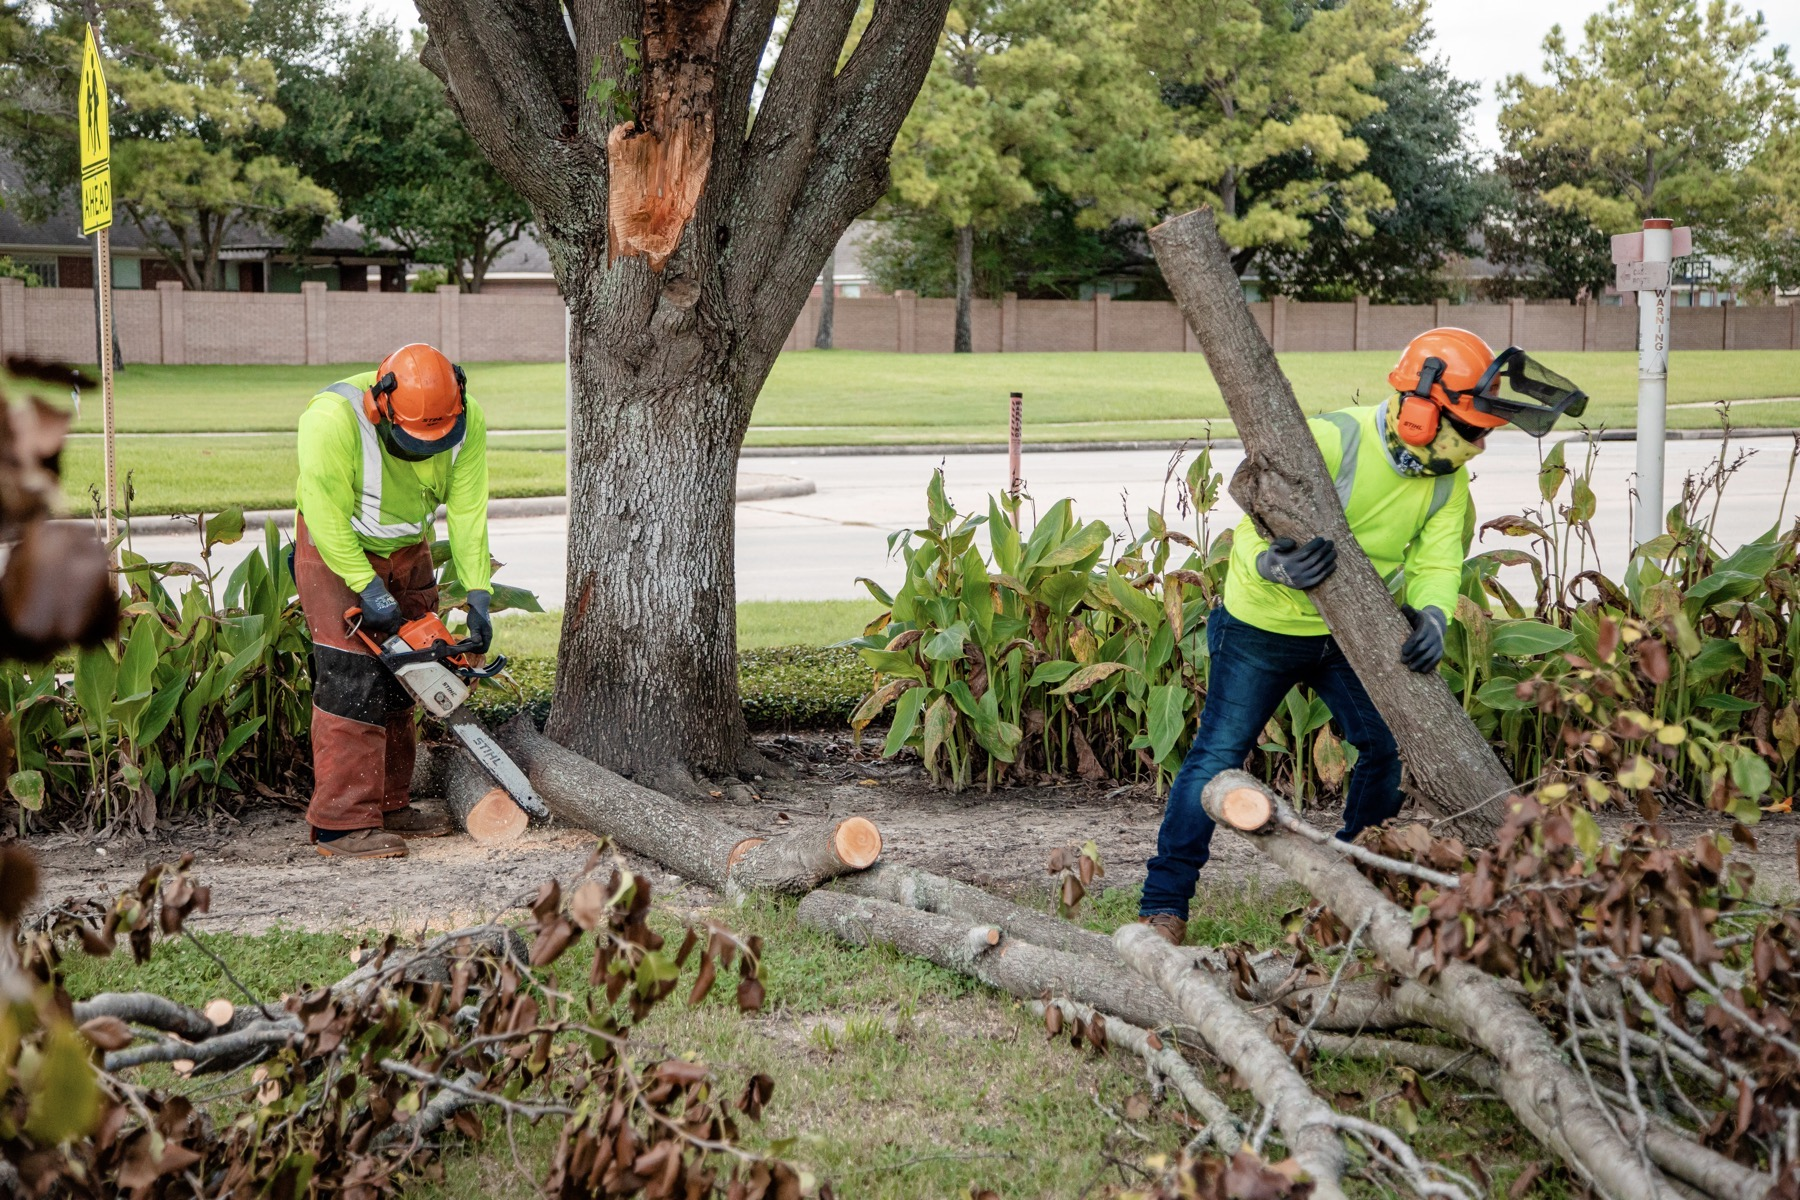 Tree service team cleaning up fallen branches